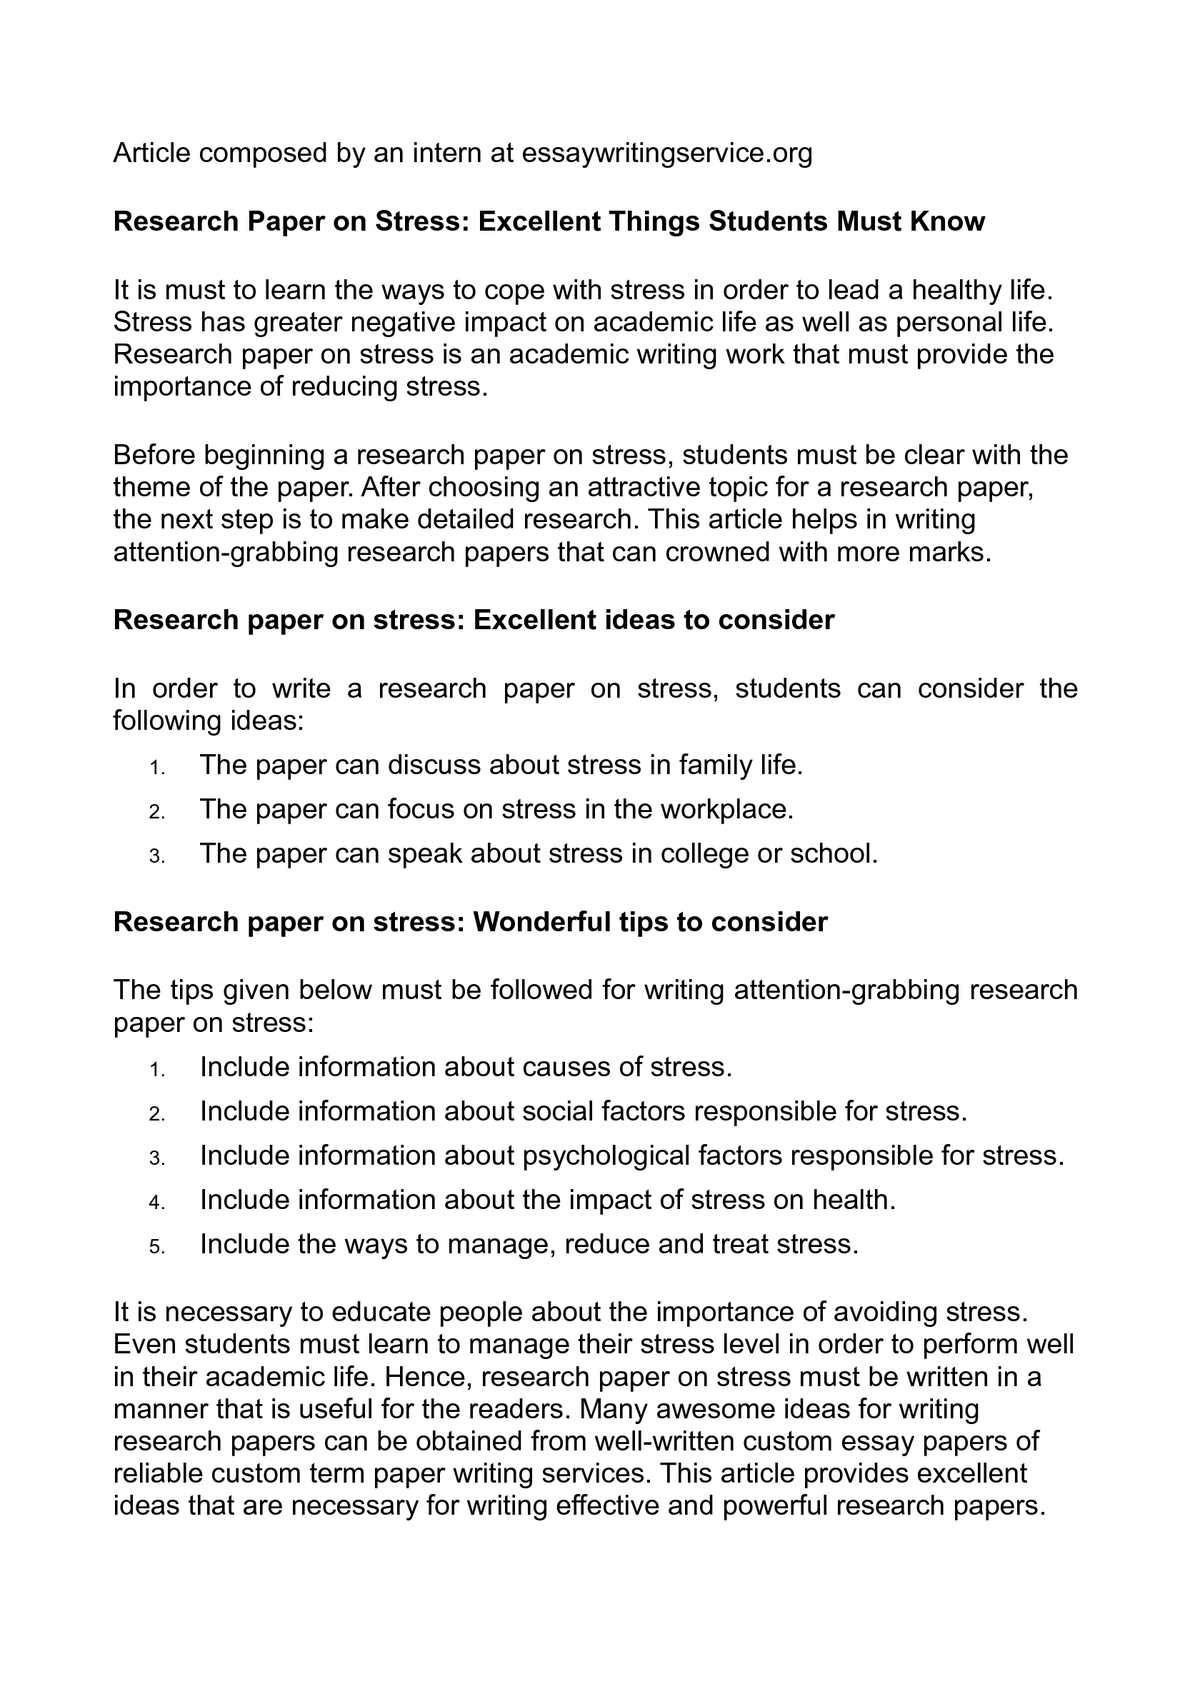 020 Ideas To Write Research Paper On Dreaded A Good Full